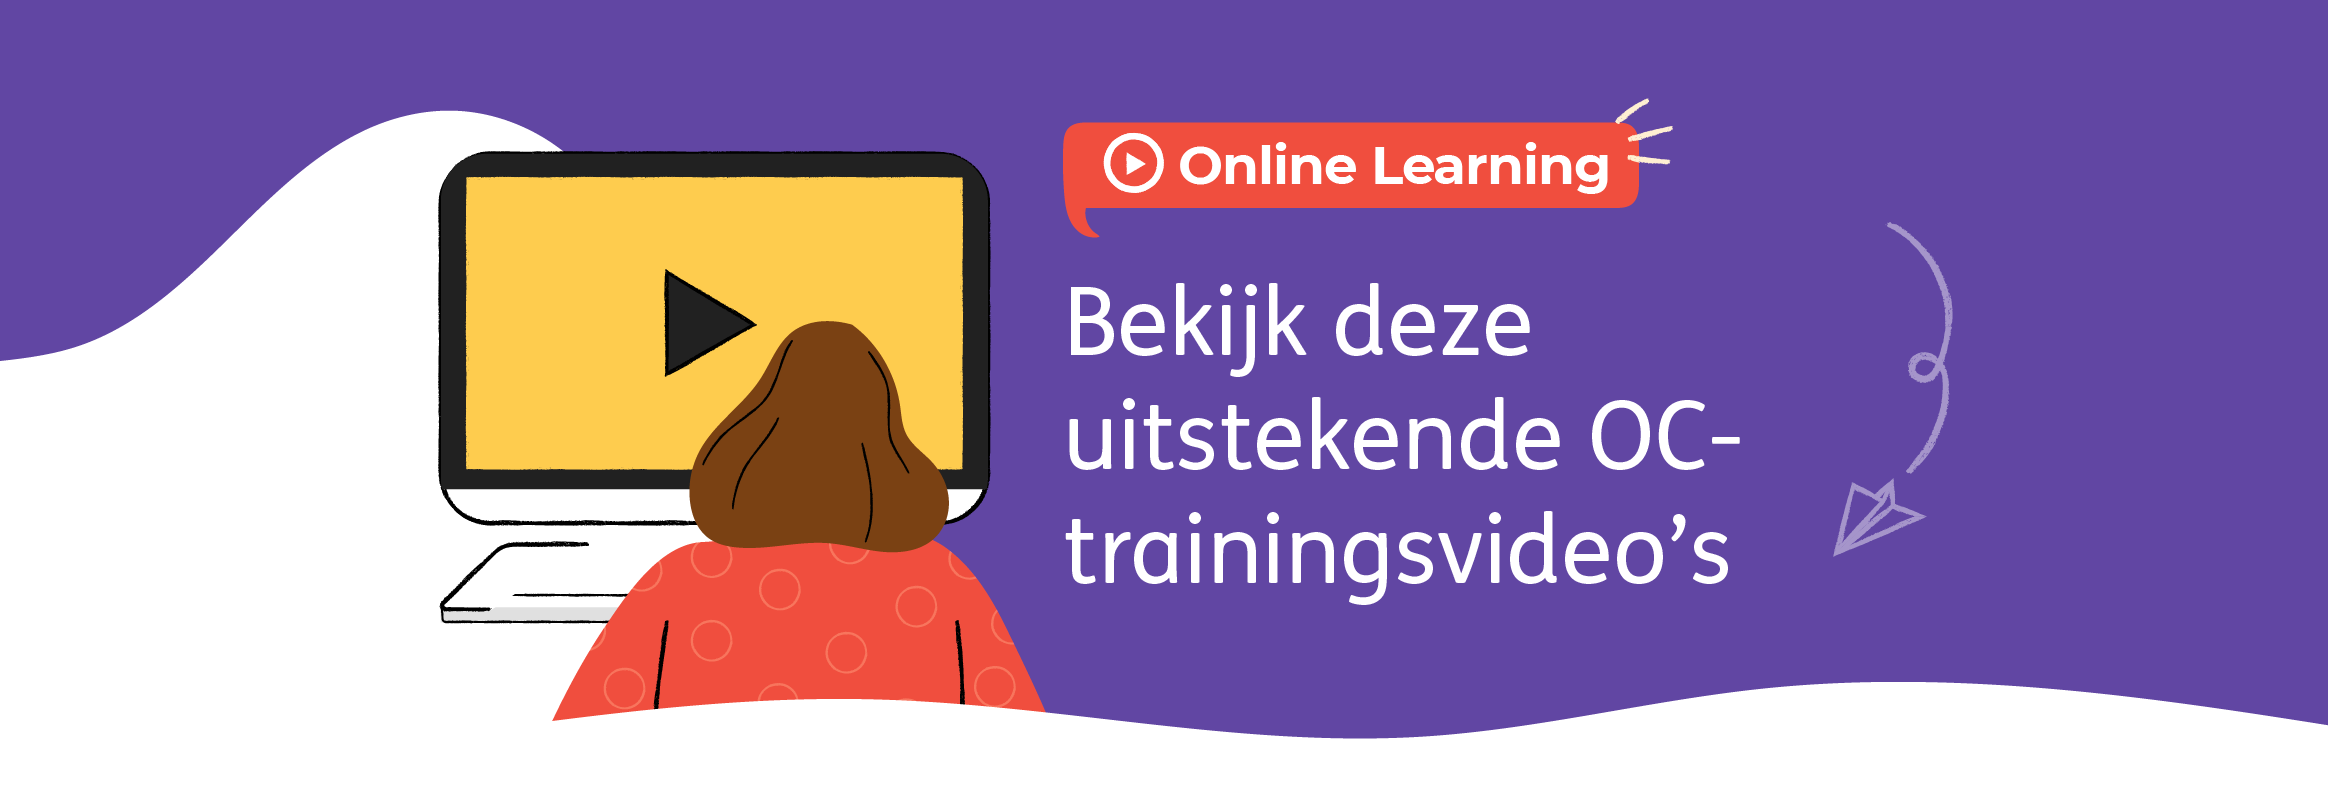 Check out deze OC-trainingsvideo's